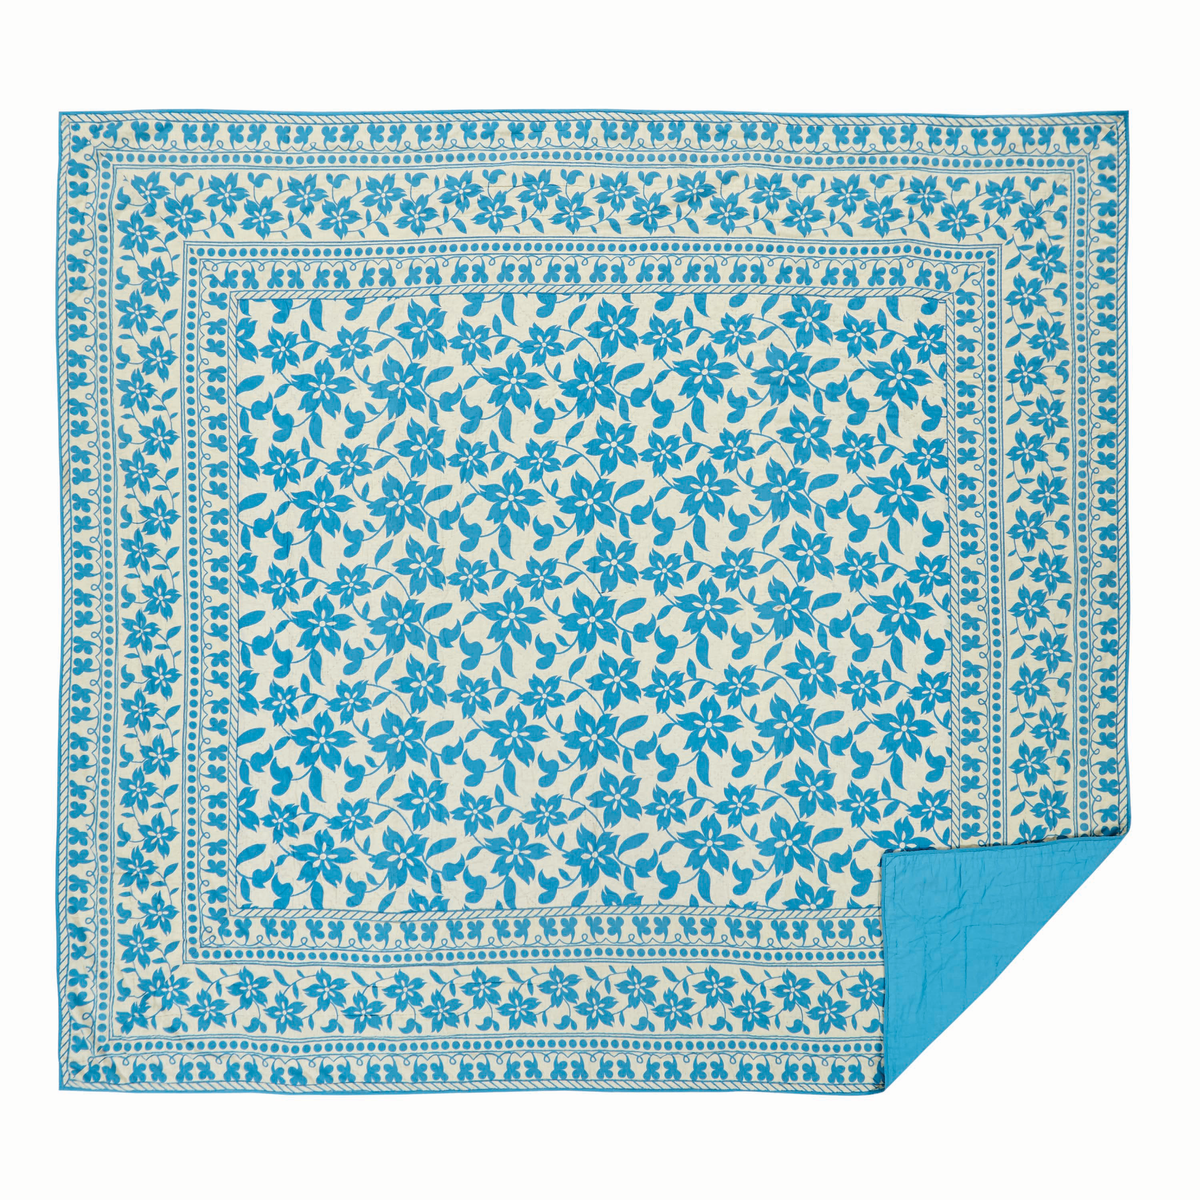 Briar Azure California King Quilt - Patchwork - Sale Priced - $25 Off - Vhc